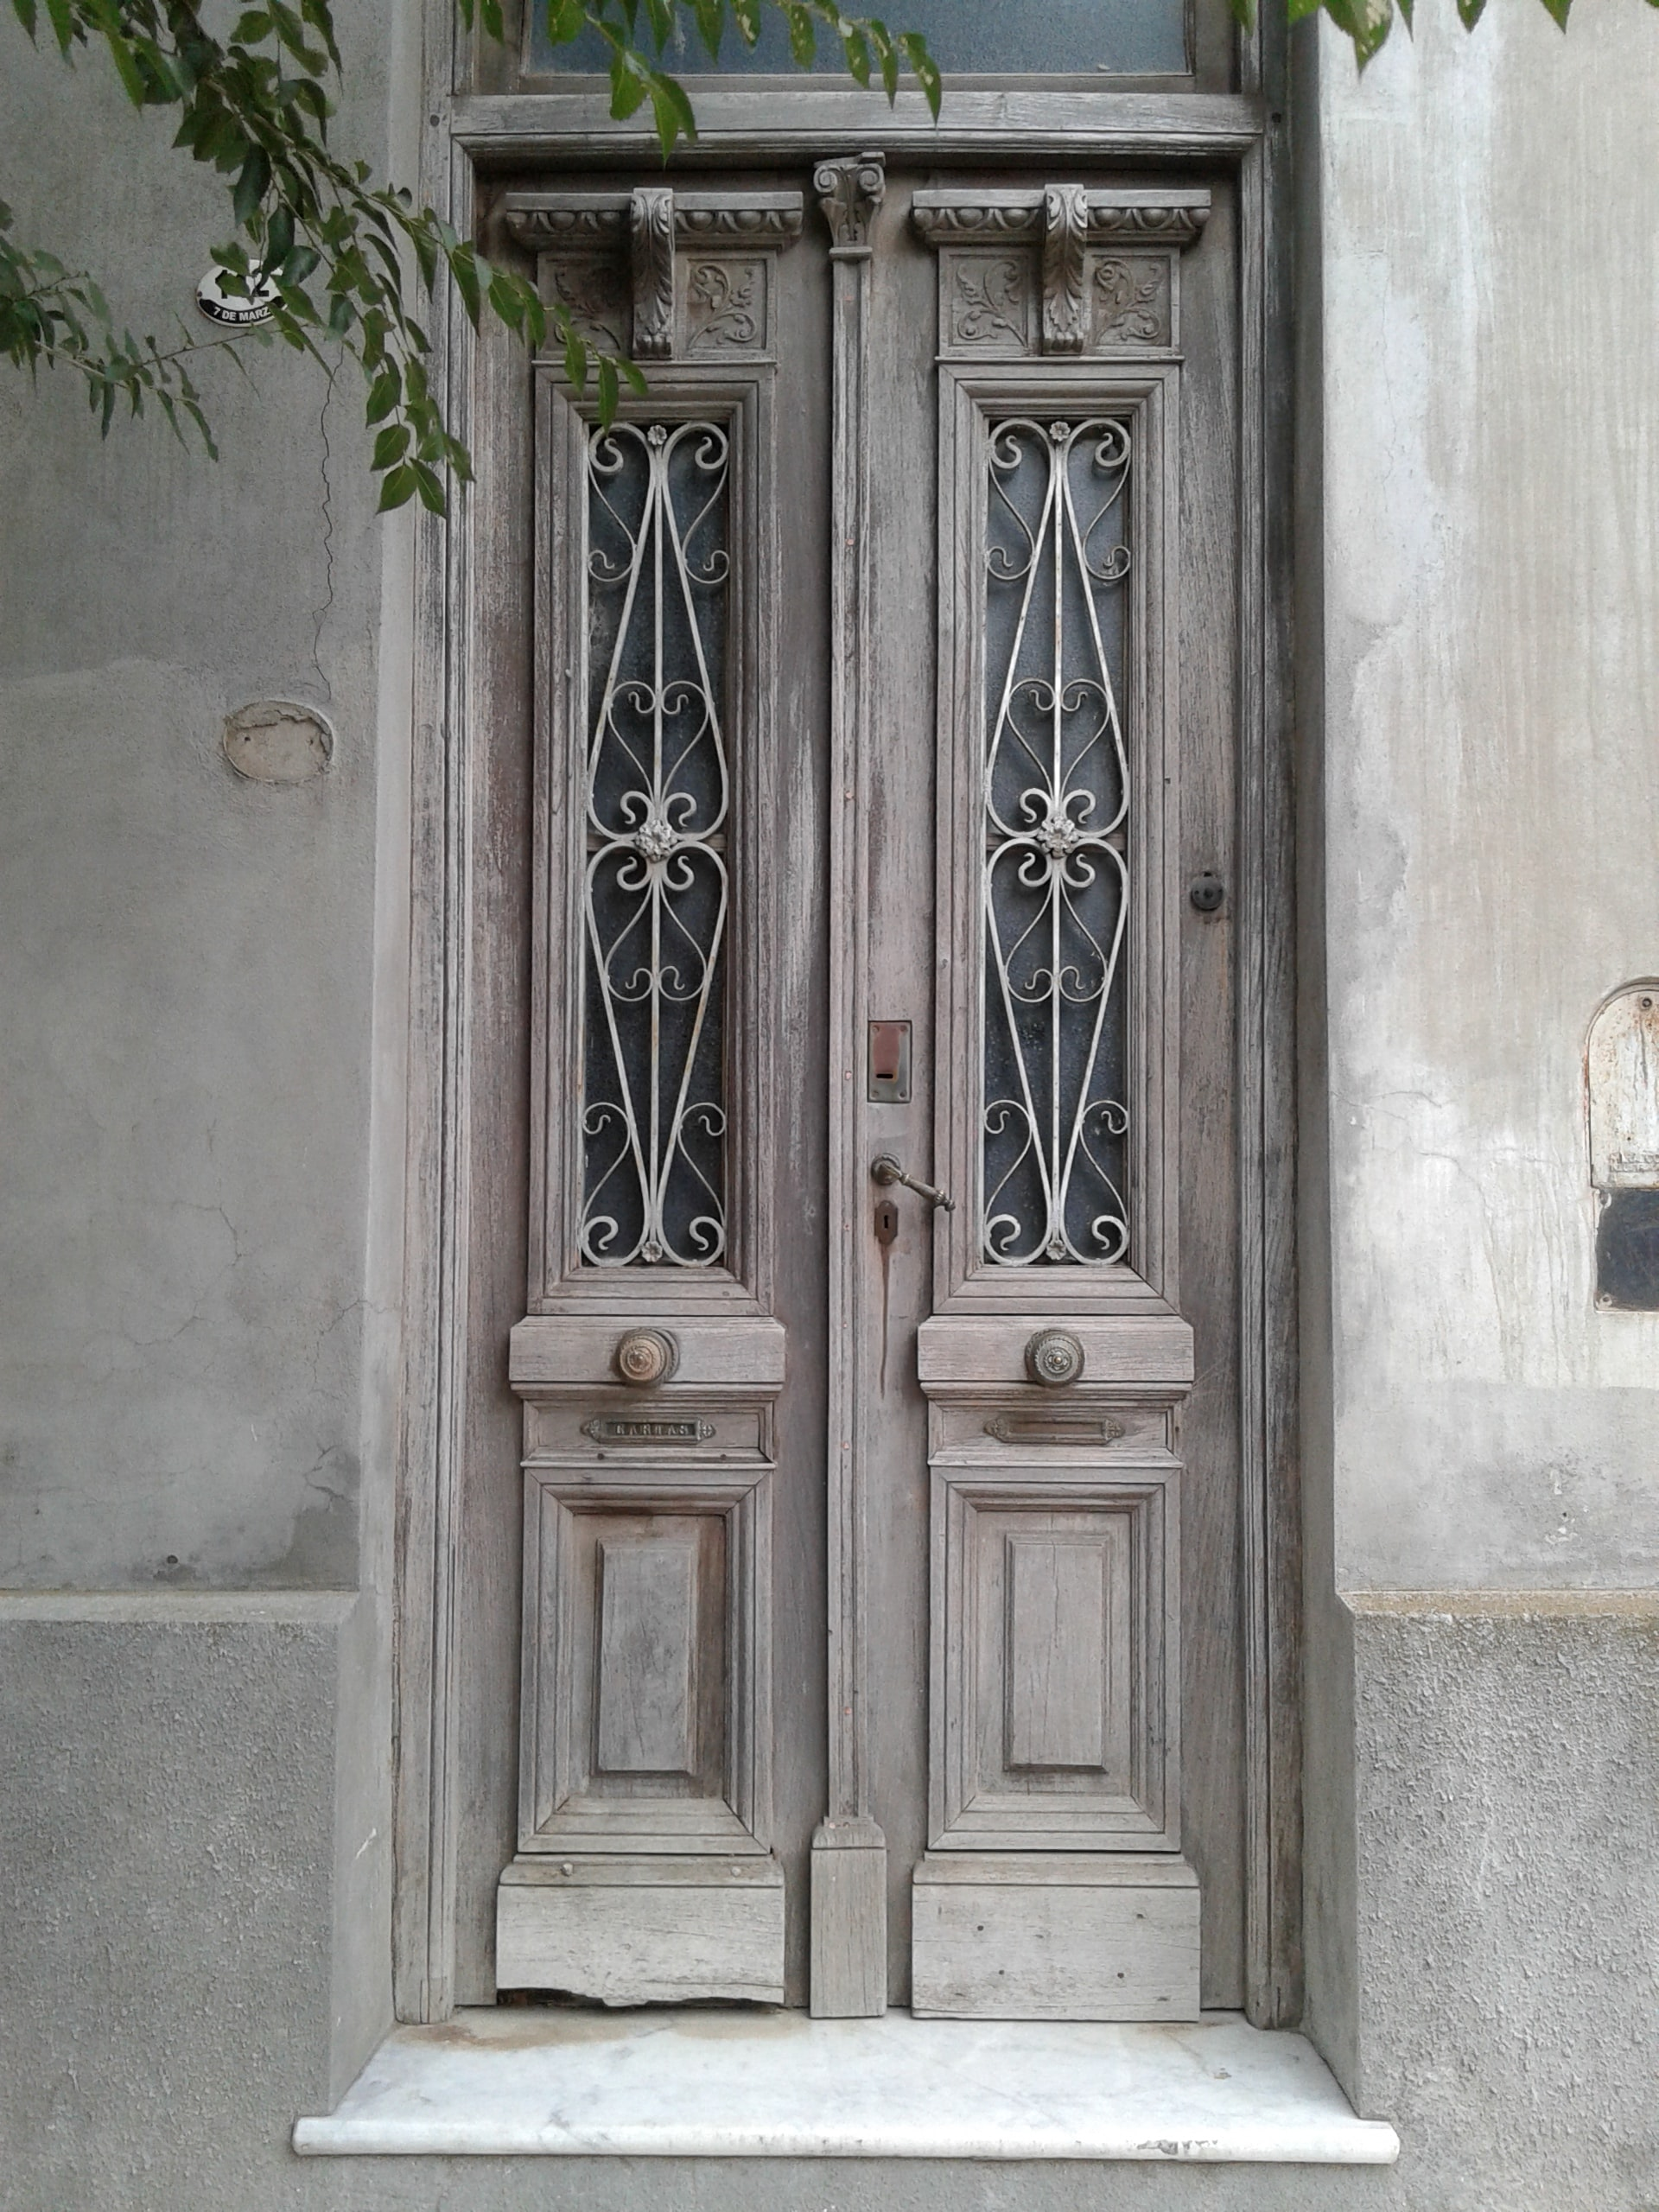 Old vintage door with light wood and tall decorative glass windows on a tan building